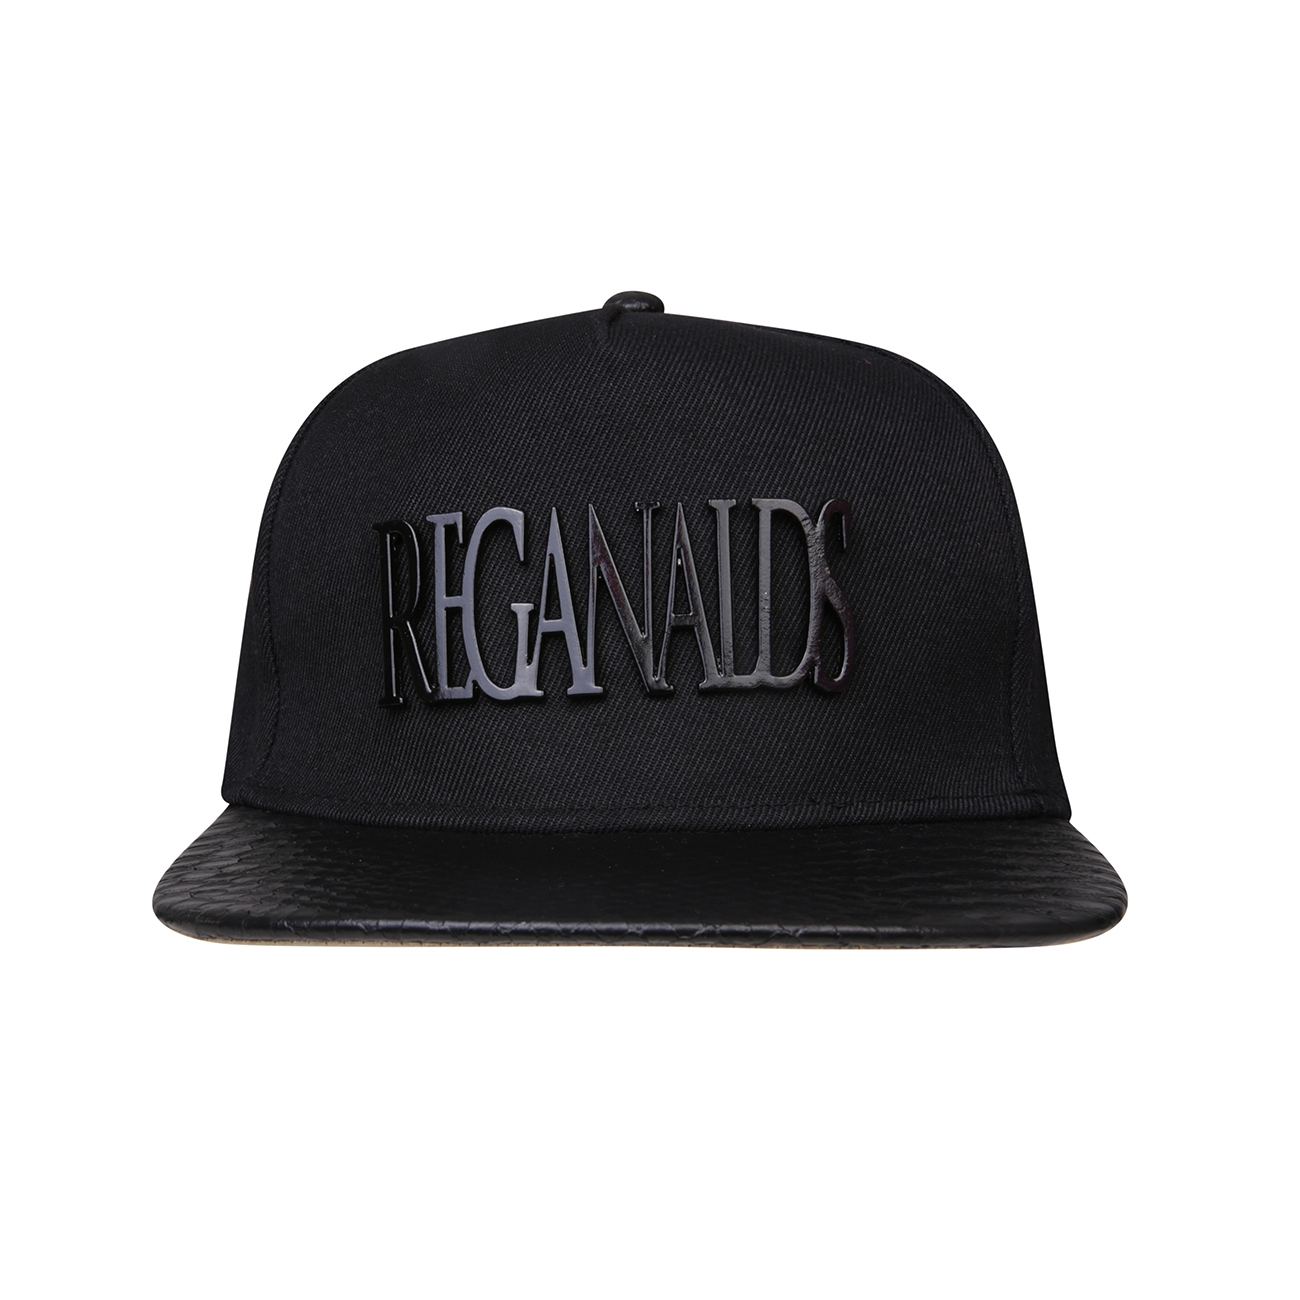 REG31 Reganalds Signature Black And Gold Faux Leather Cap